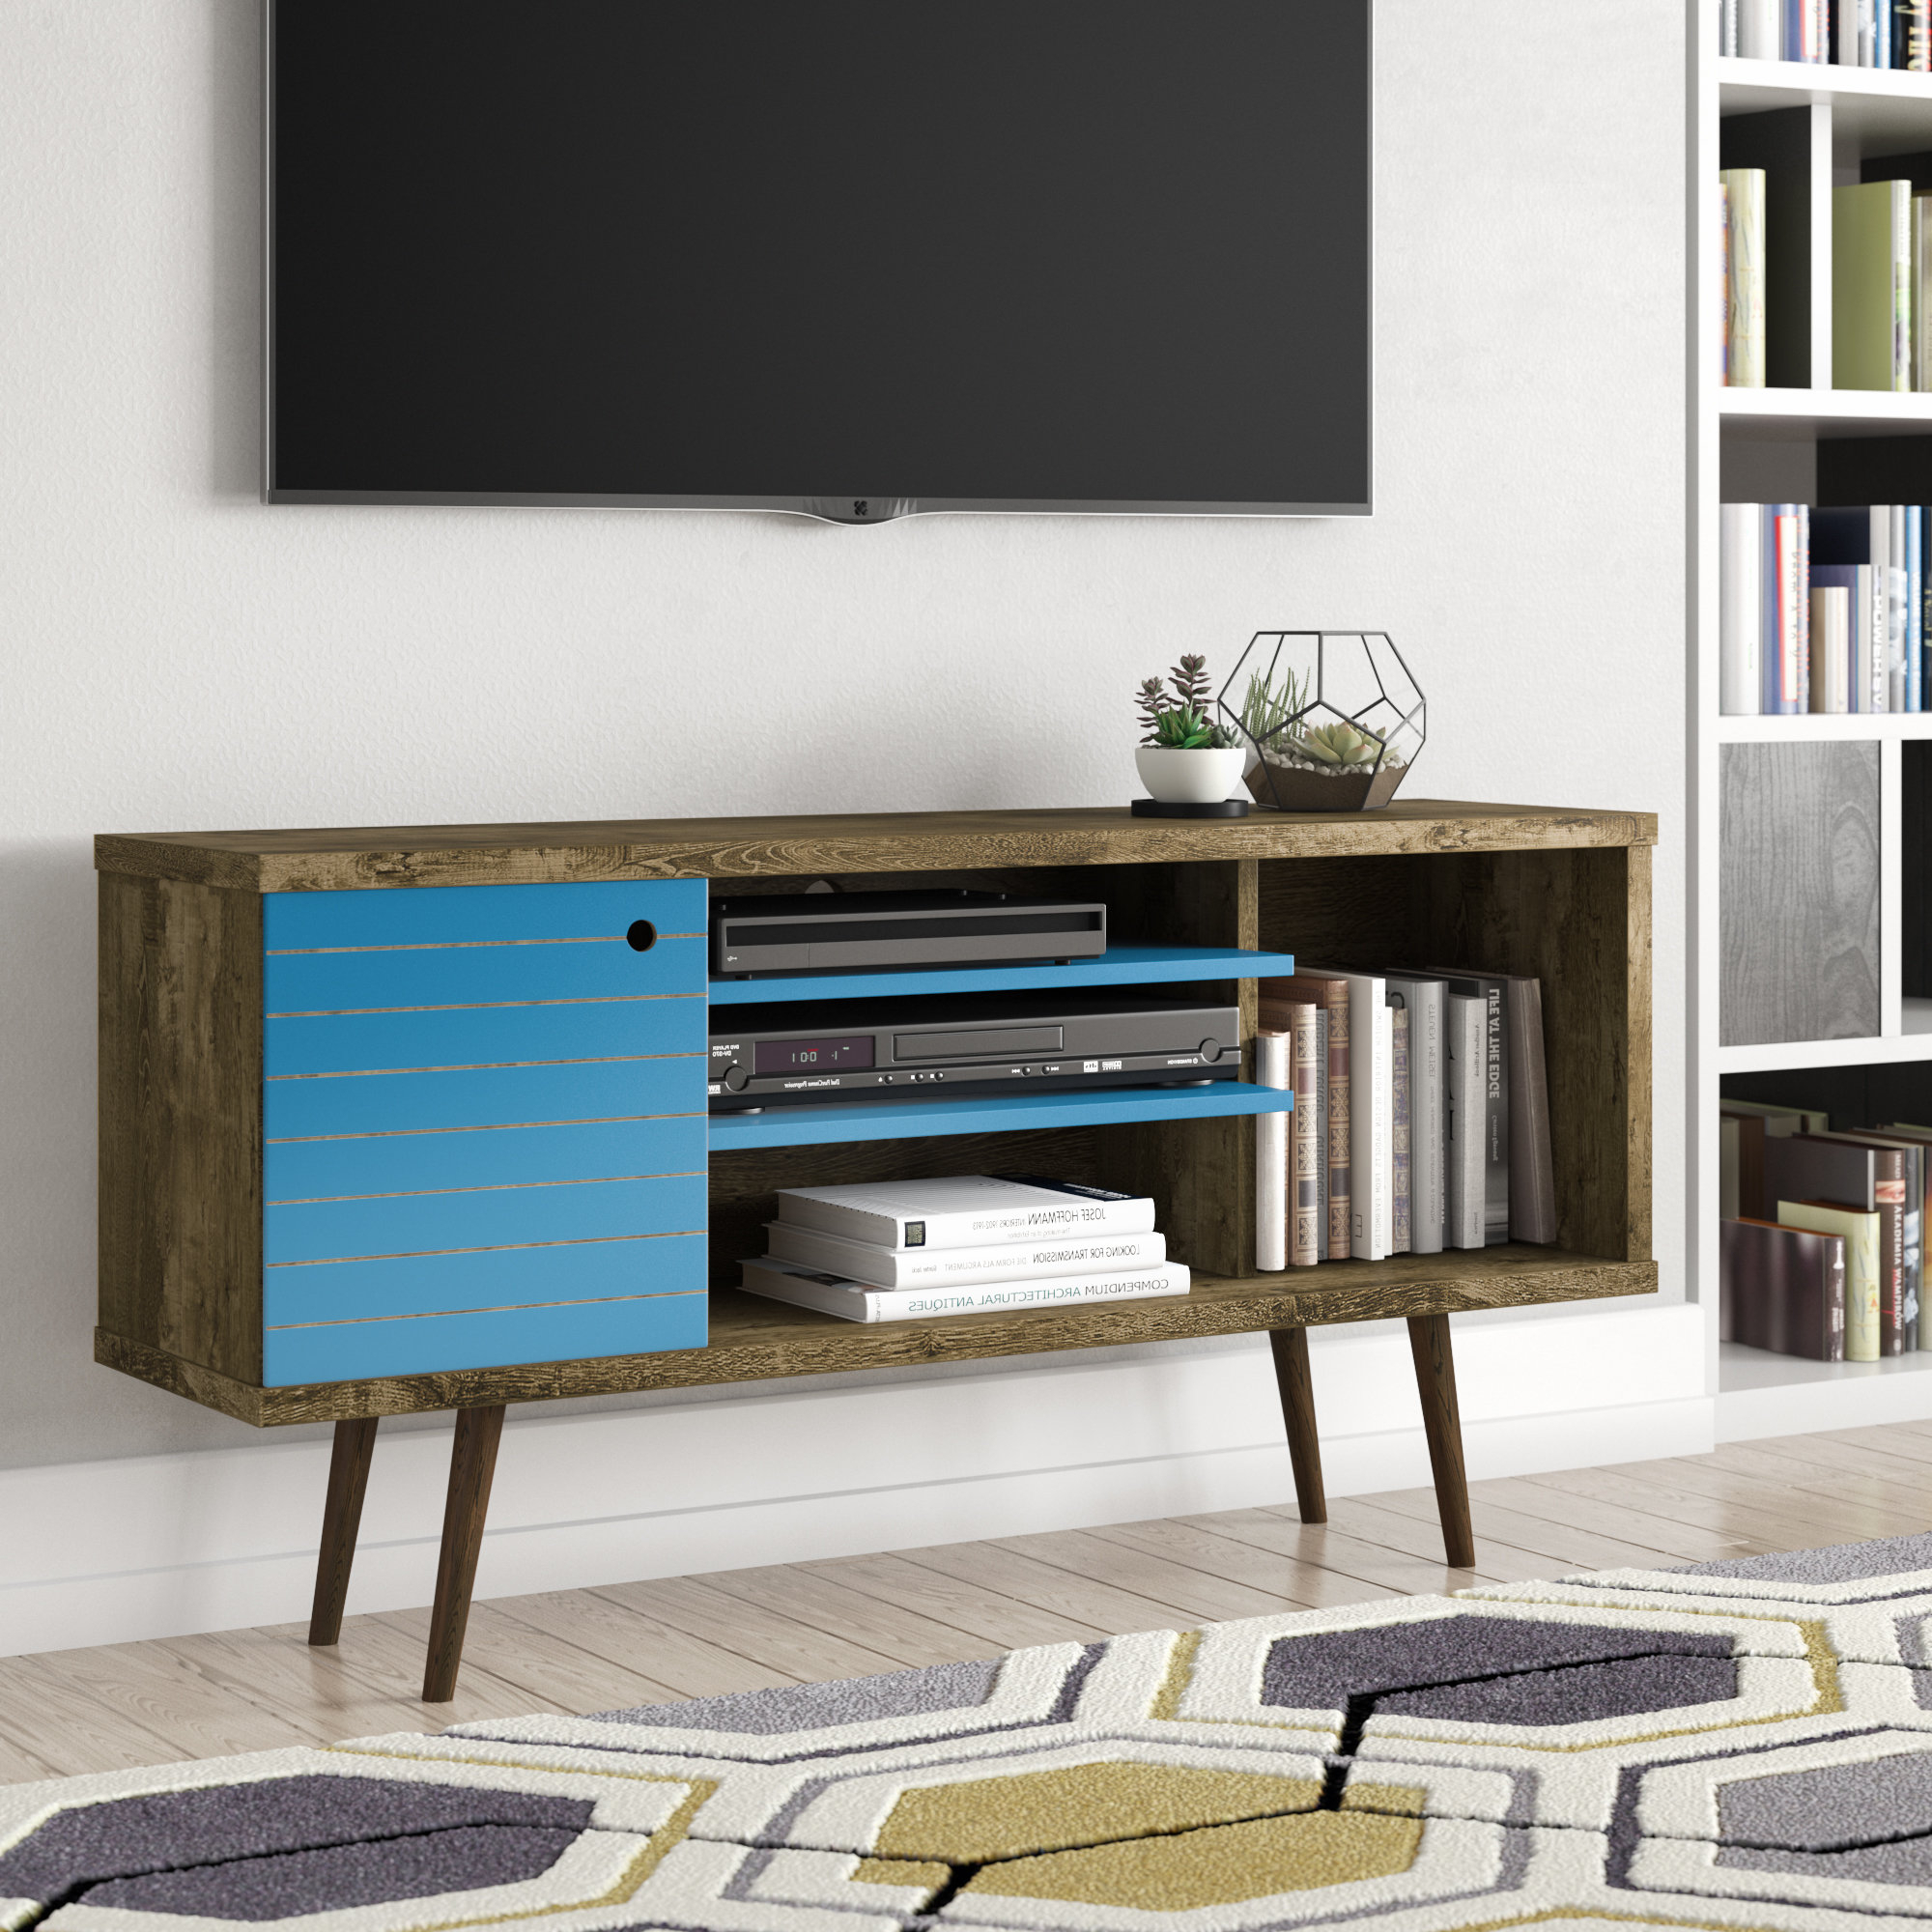 Blue Tv Stands You'll Love | Wayfair For Century Sky 60 Inch Tv Stands (View 6 of 20)